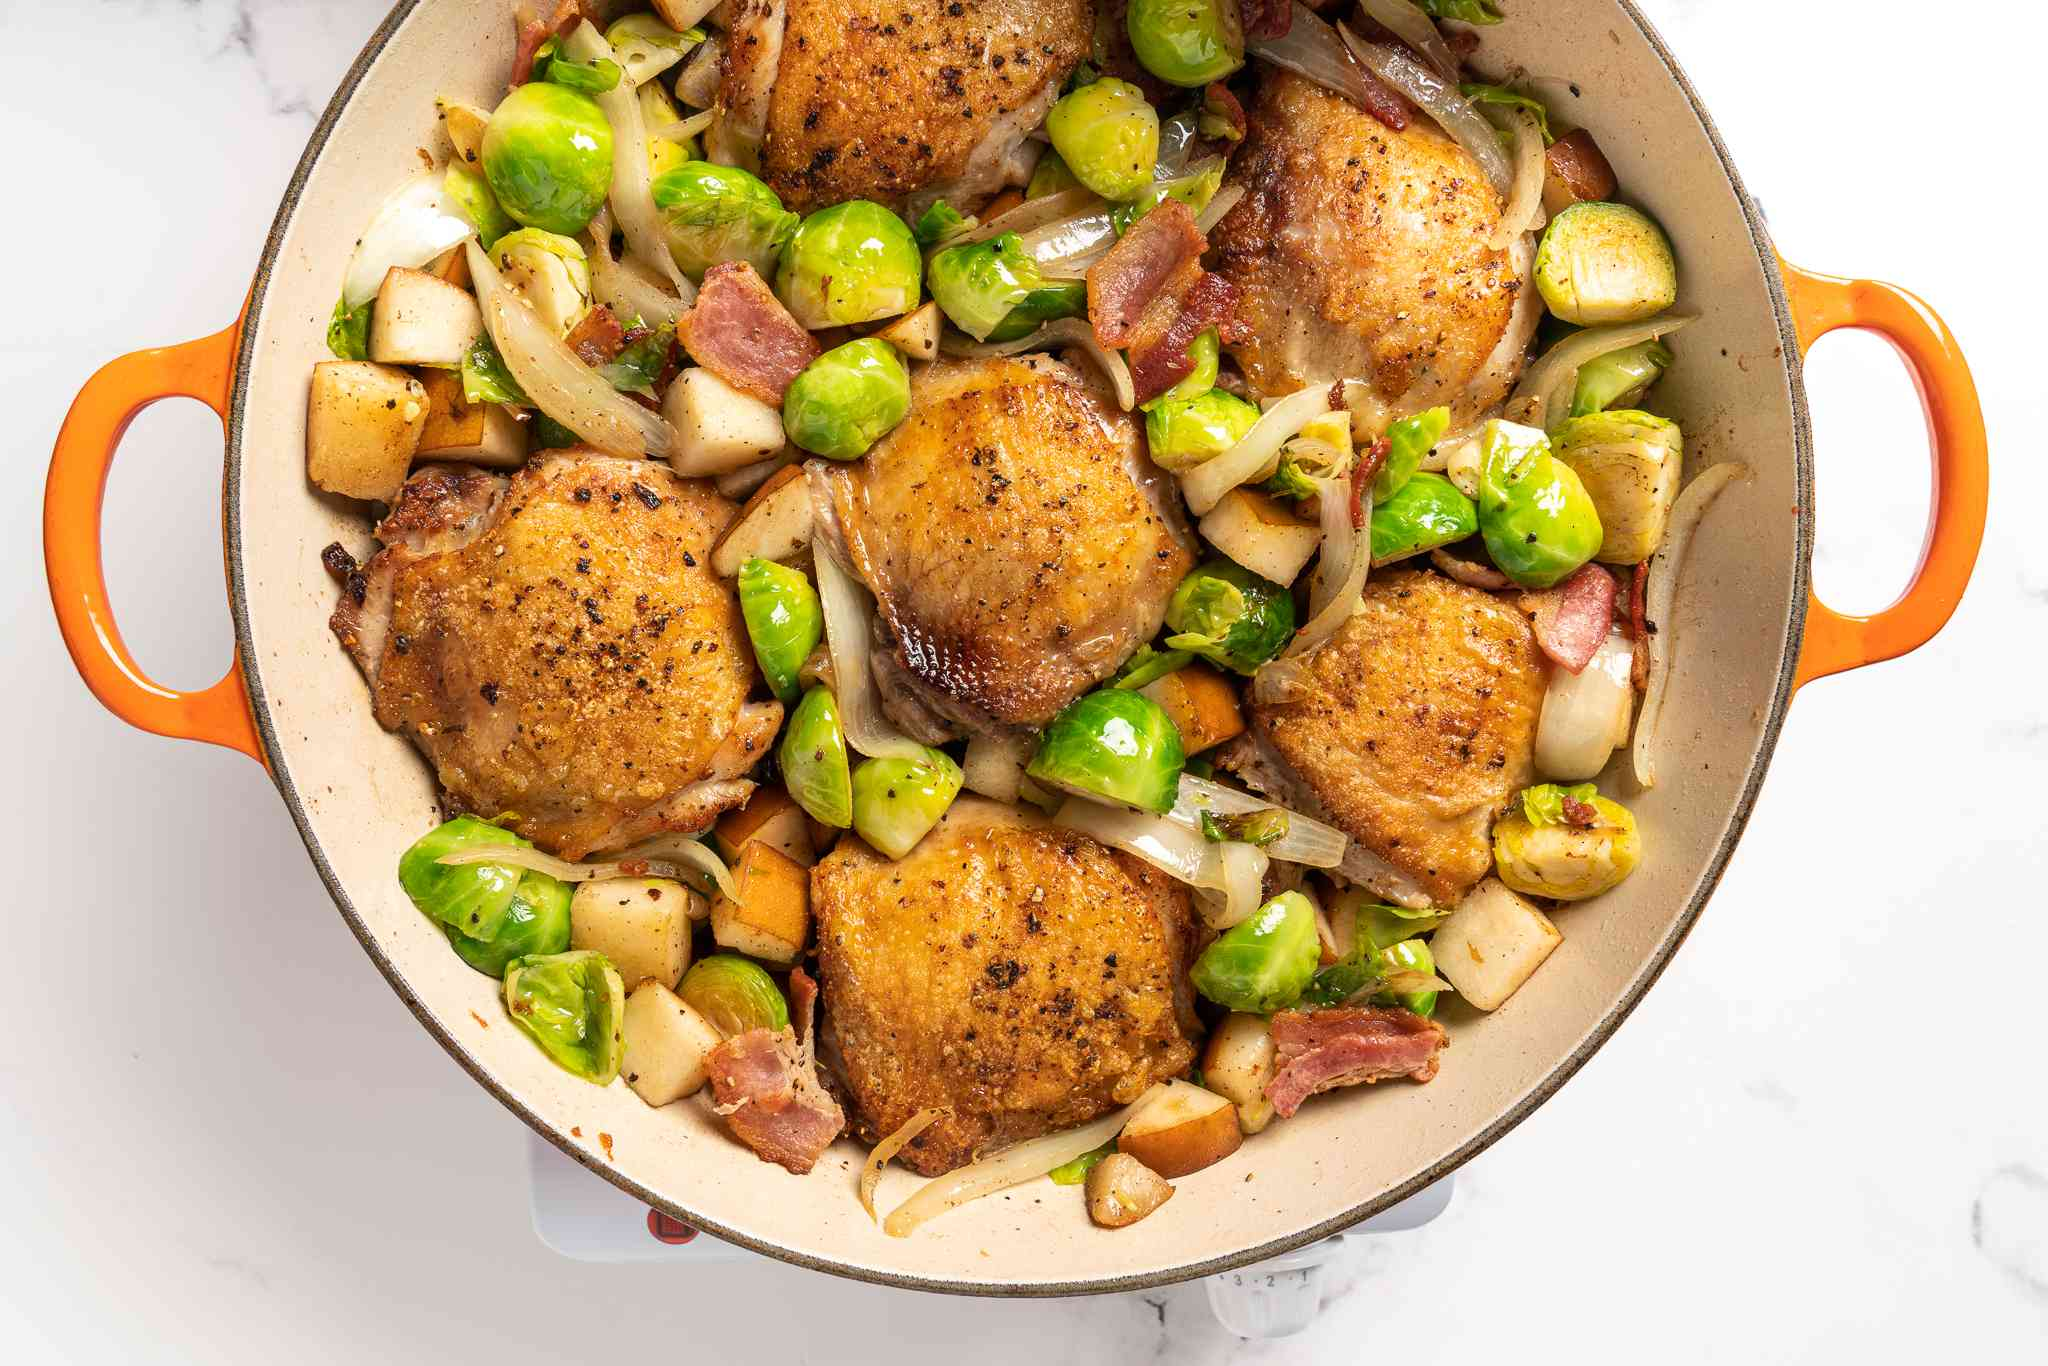 chicken and Brussels sprouts mixture in a skillet